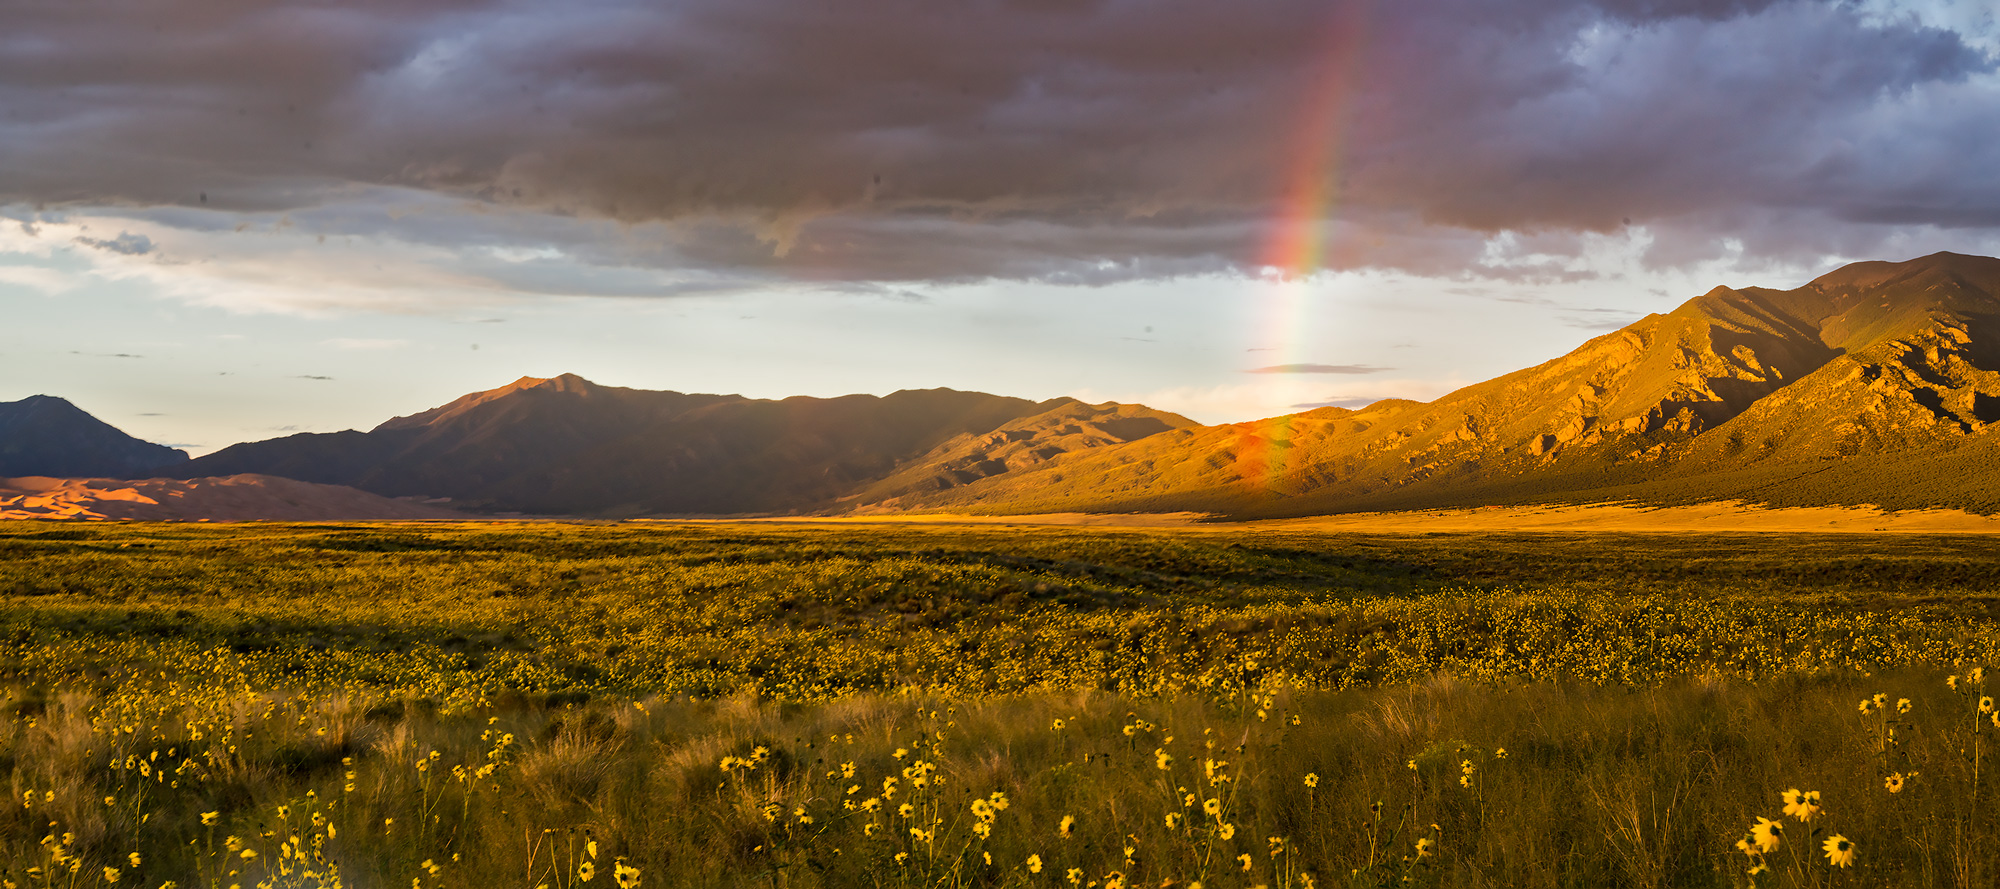 Rainbow over filed of sunflowers south of the Great Sand Dunes.